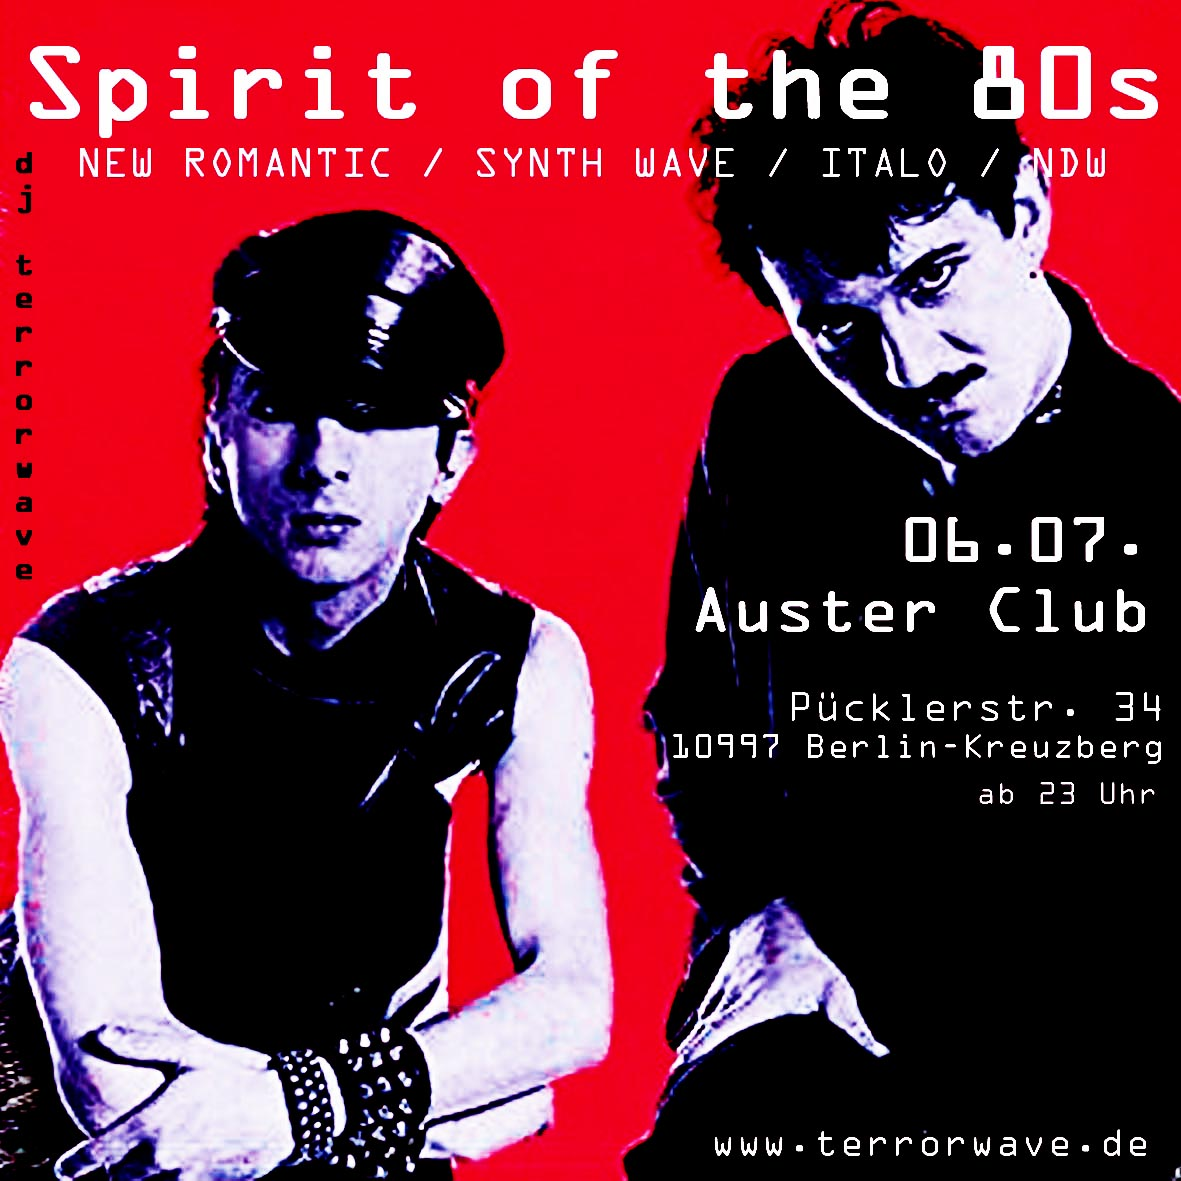 spirit of the 80s Juli